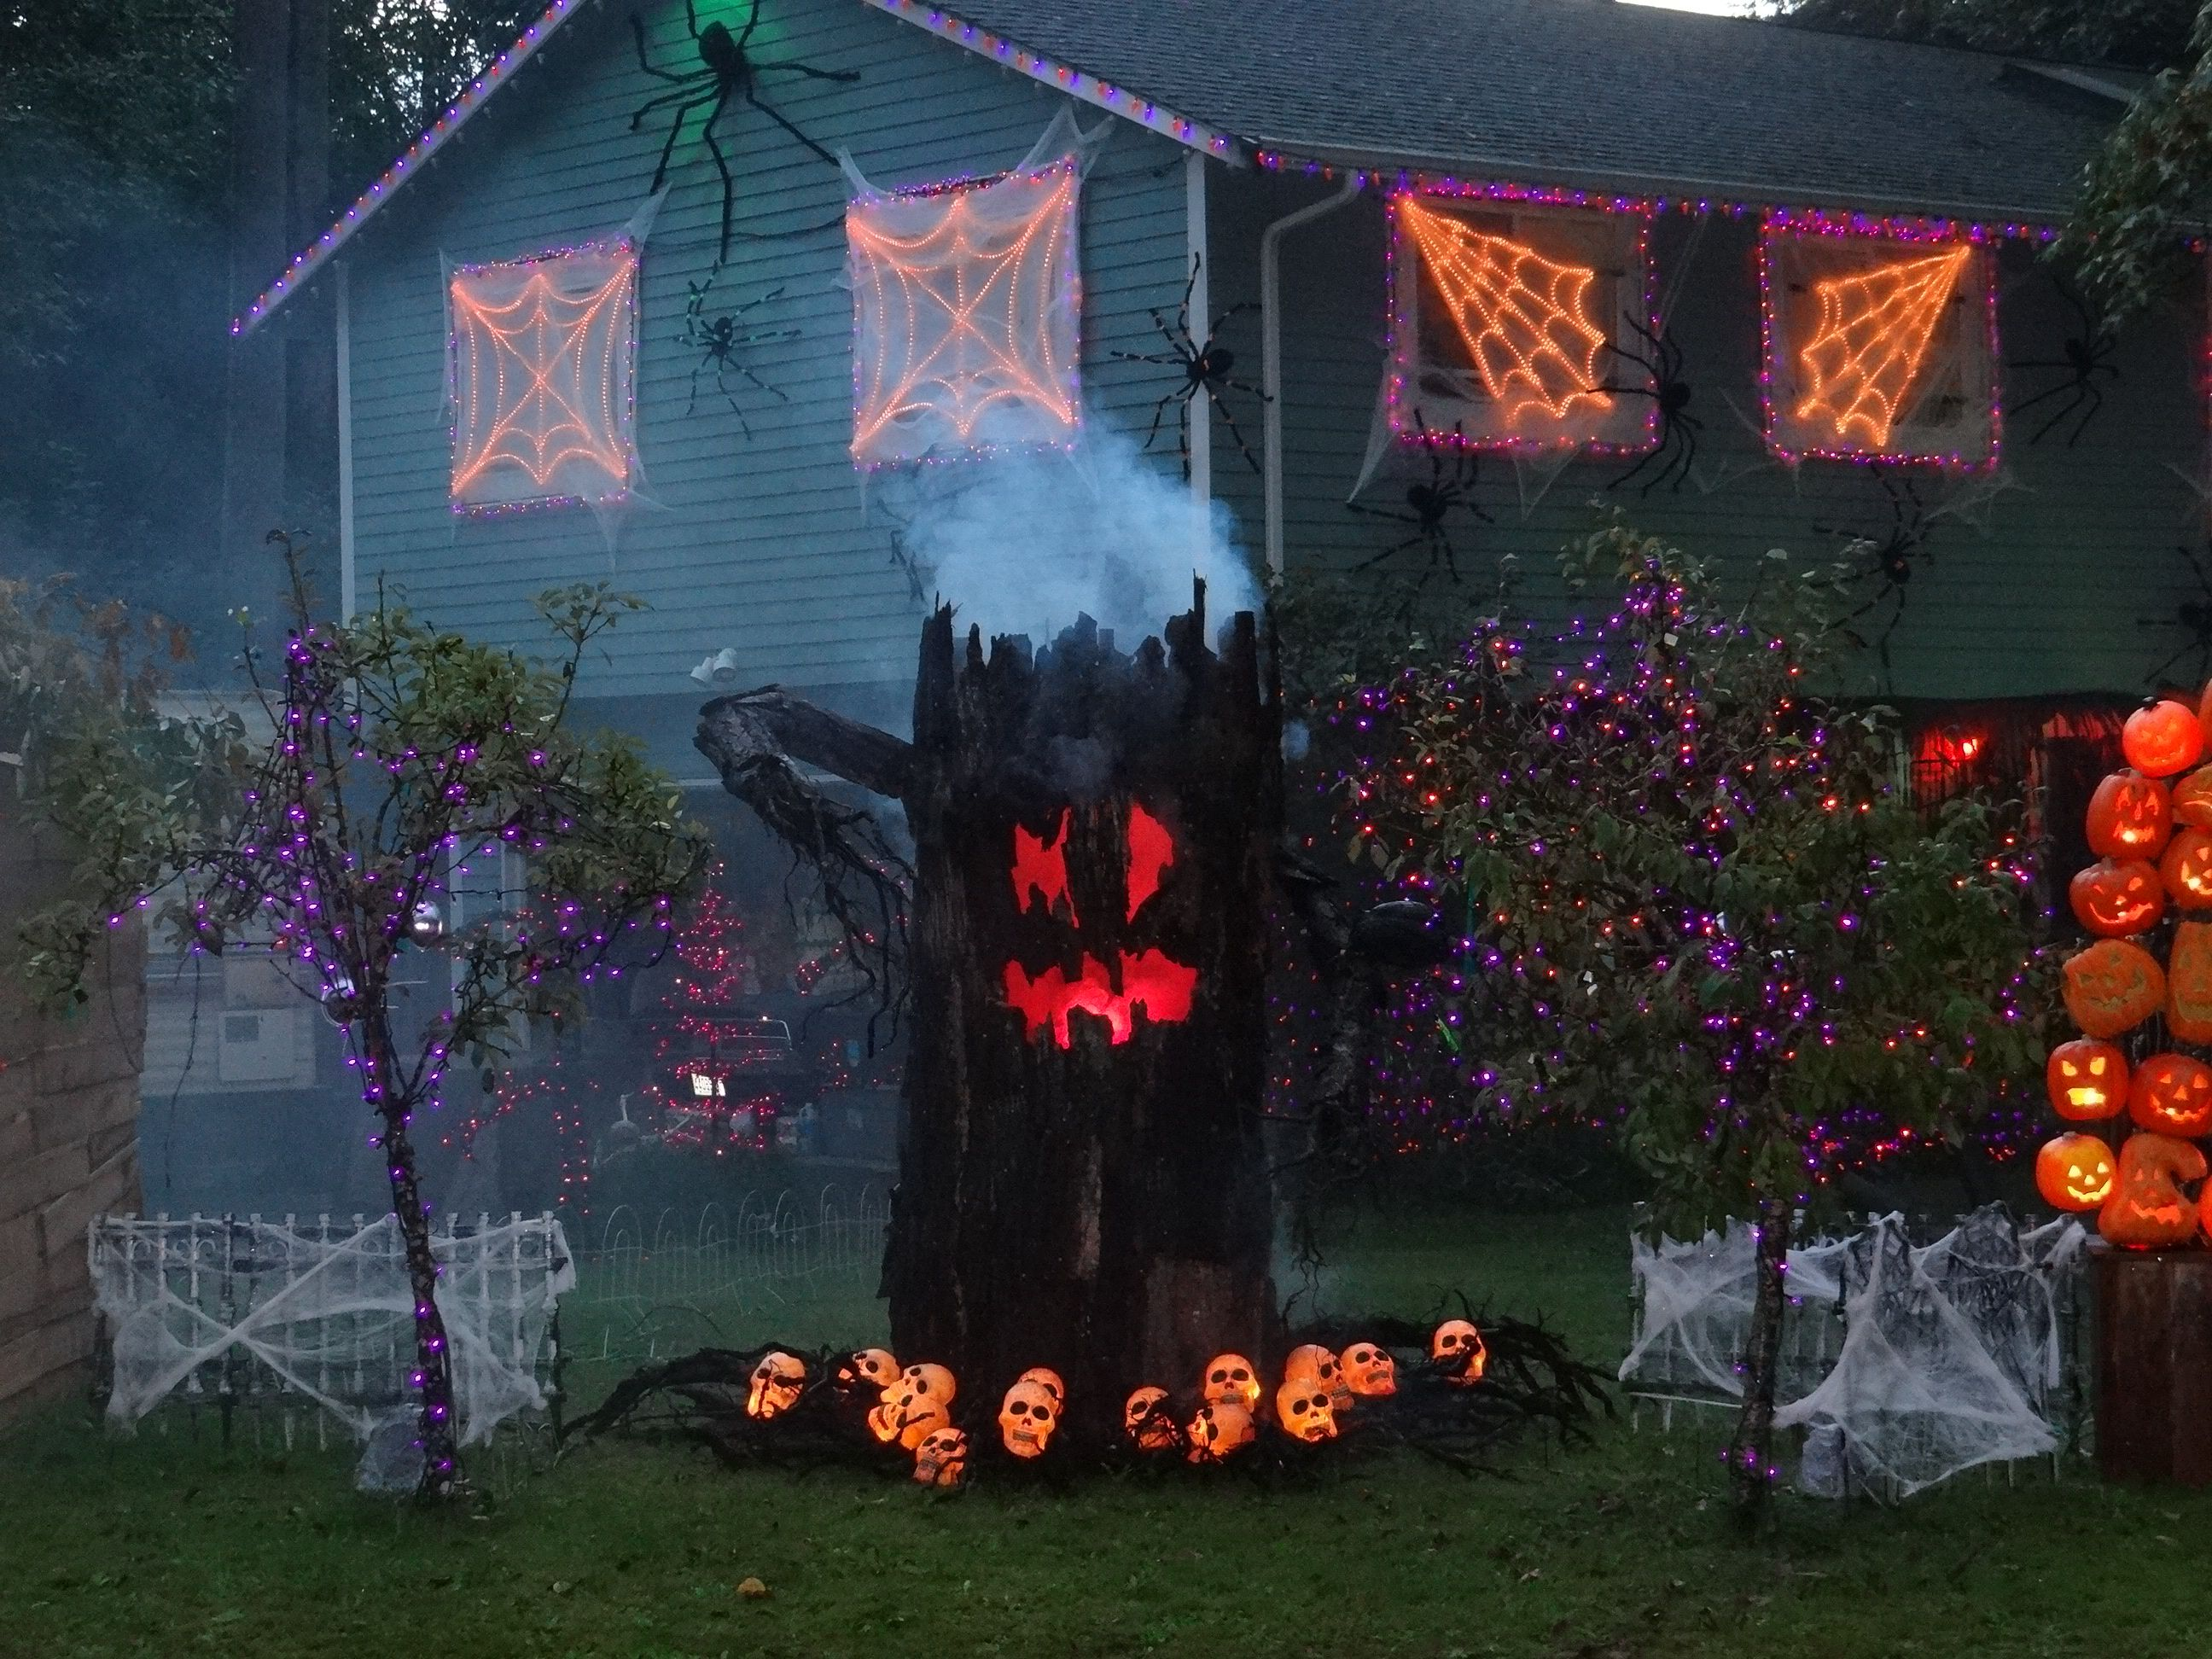 decoration cool decorating halloween outdoor with scary black tree and spyder also pumpkins for halloween outdoor design ideas wonderful halloween outdoor - Diy Scary Halloween Decorations For Yard